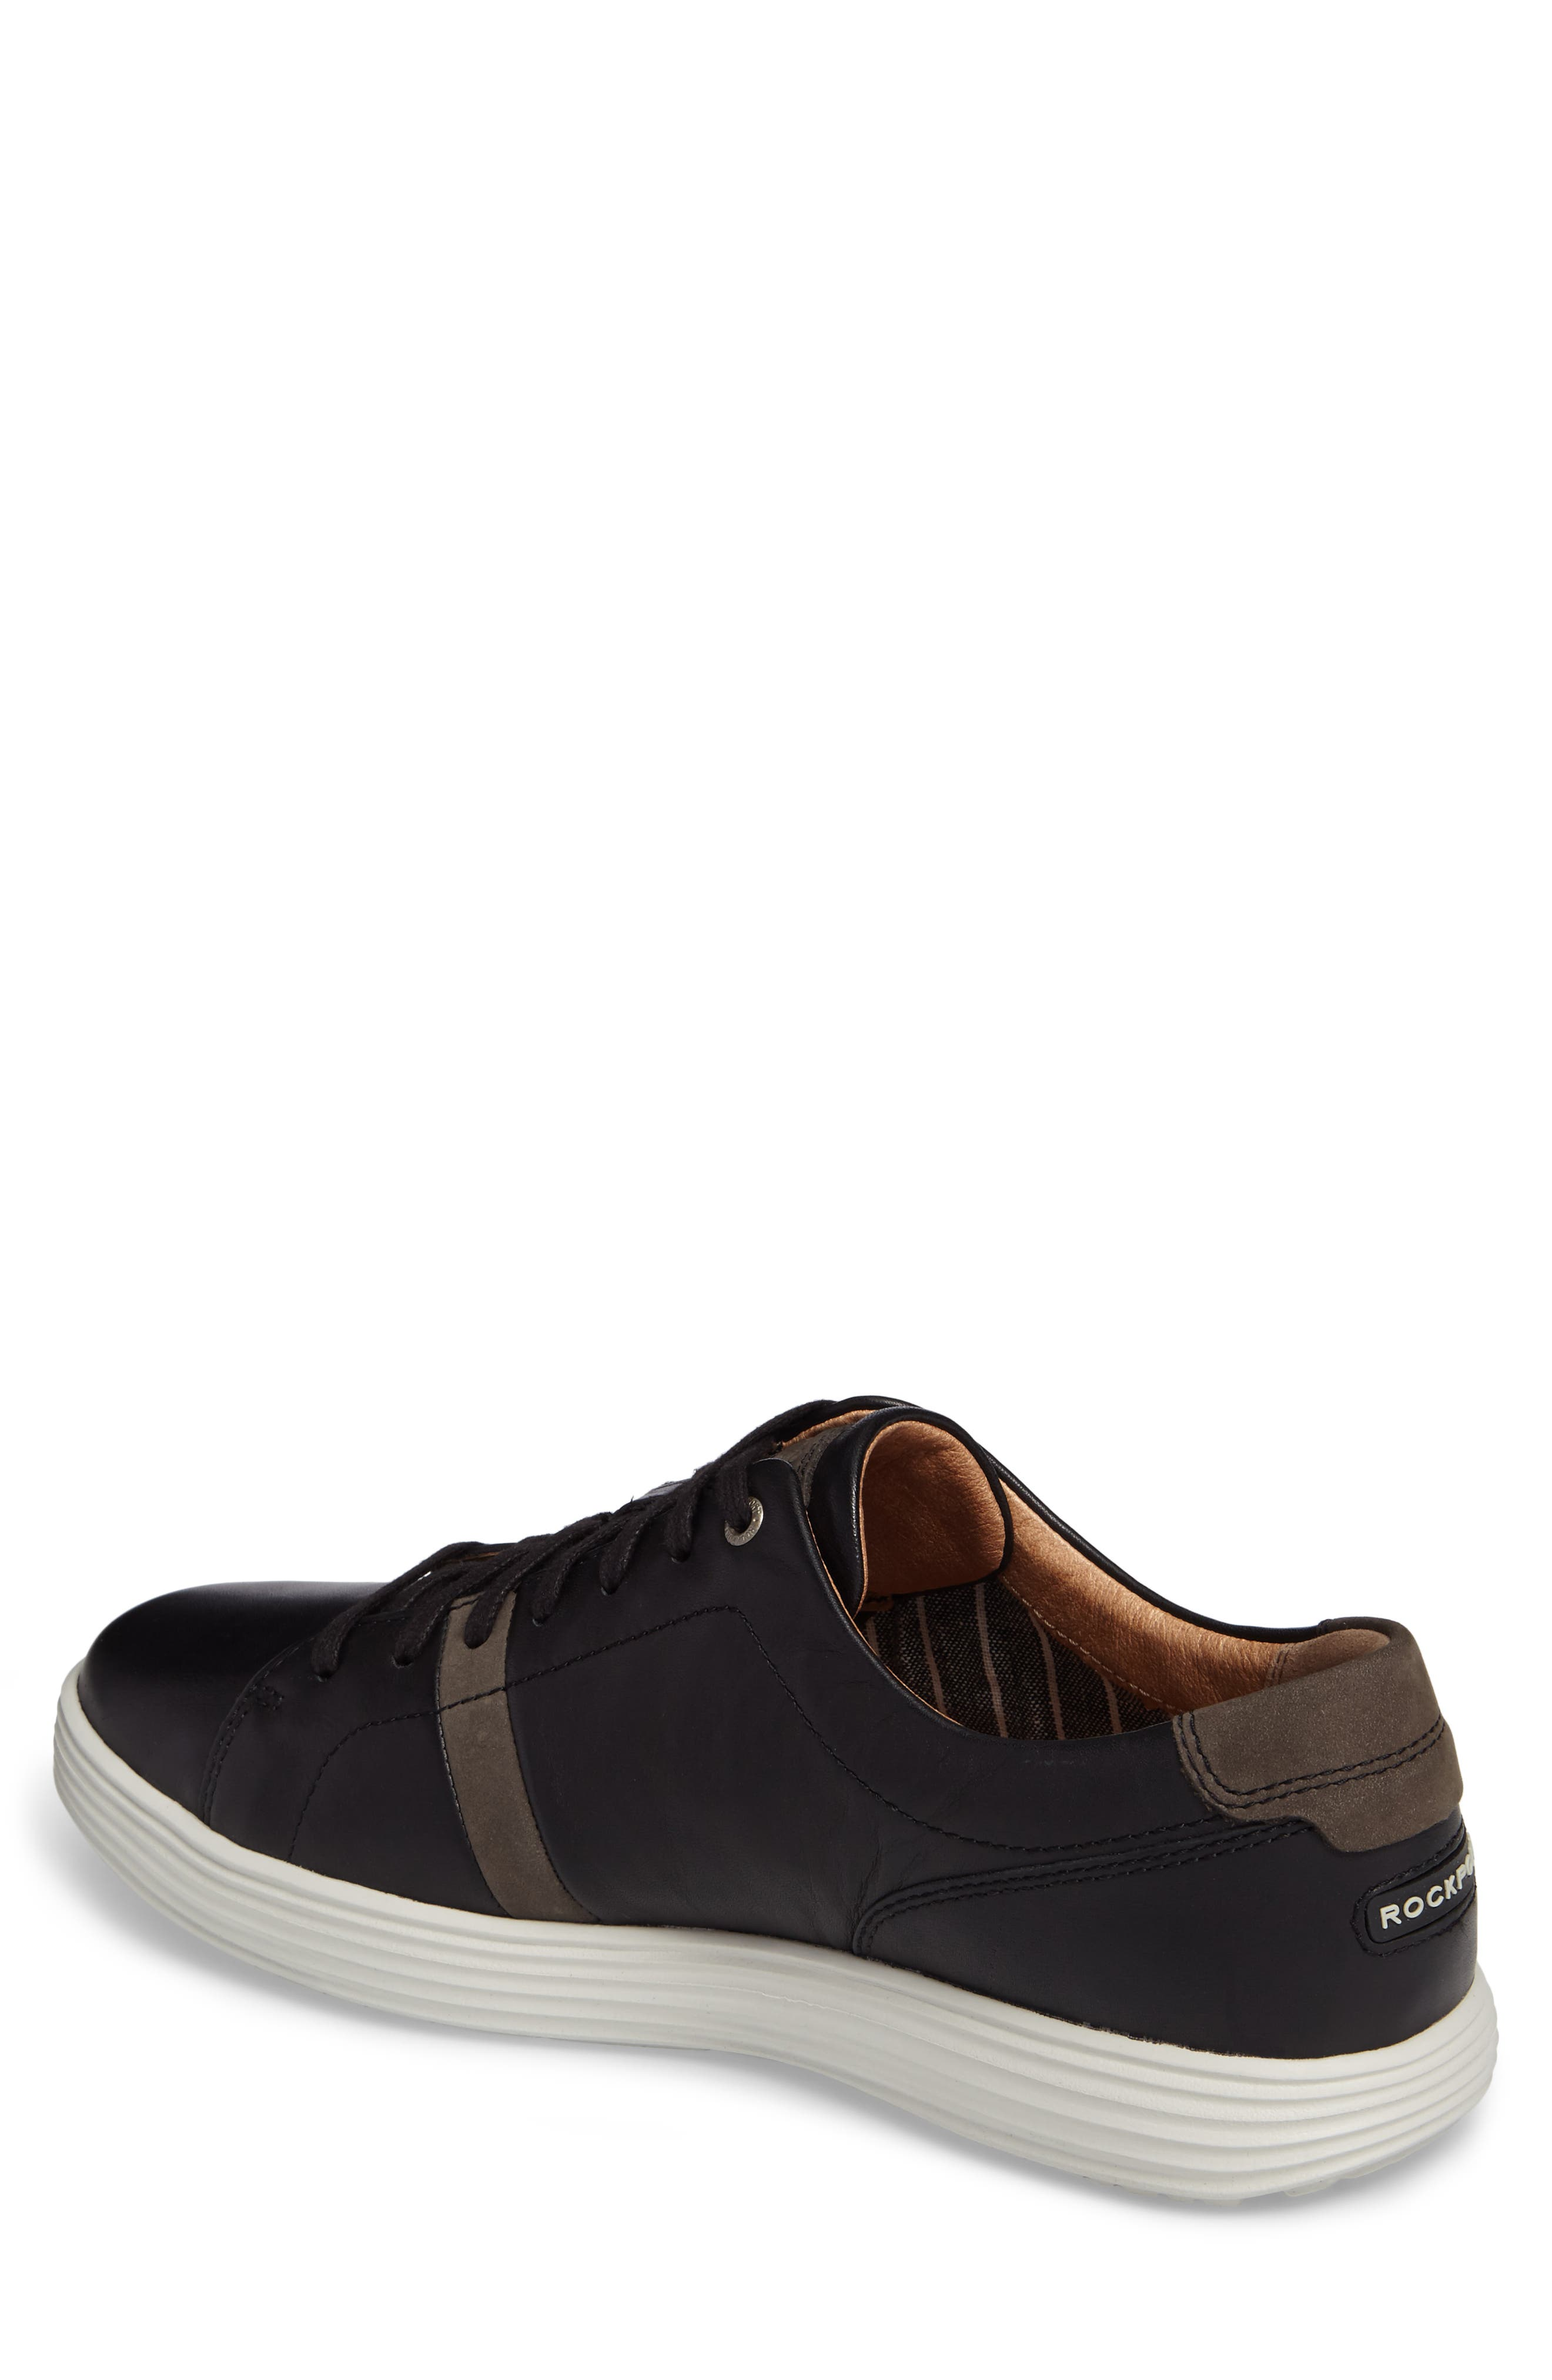 Thurston Sneaker,                             Alternate thumbnail 2, color,                             Black Leather